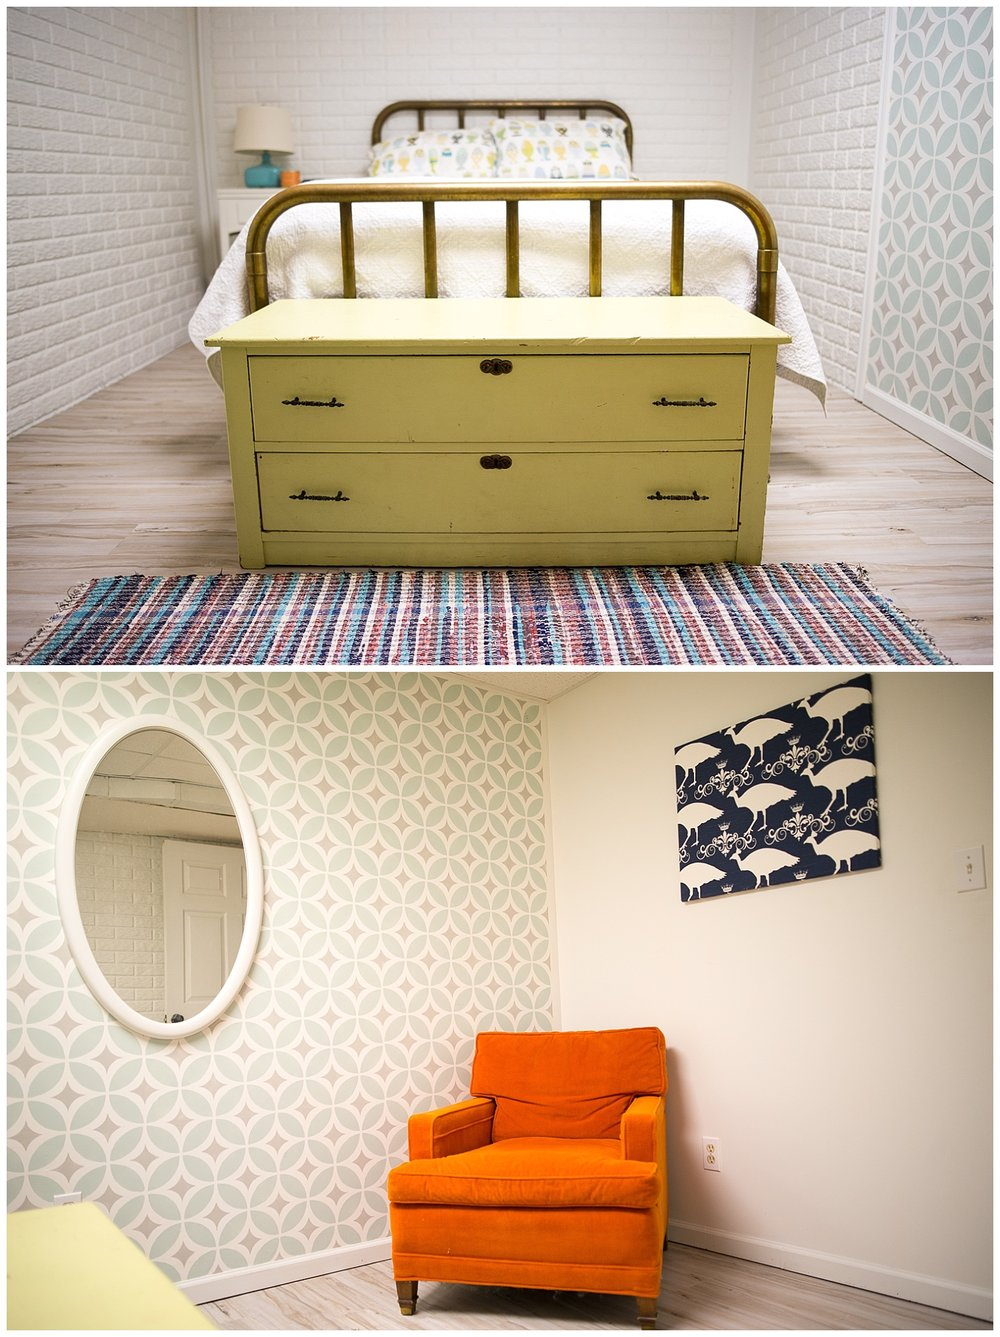 This room slays me.  Check out our  Instagram feed  to see some cool shots of Tytia in here.  The bed came from an antique shop and the dresser was her grandma's.  Helen did the wall stencil (she clearly has the patience of Job) and the fantastic orange chair came from an estate sale.